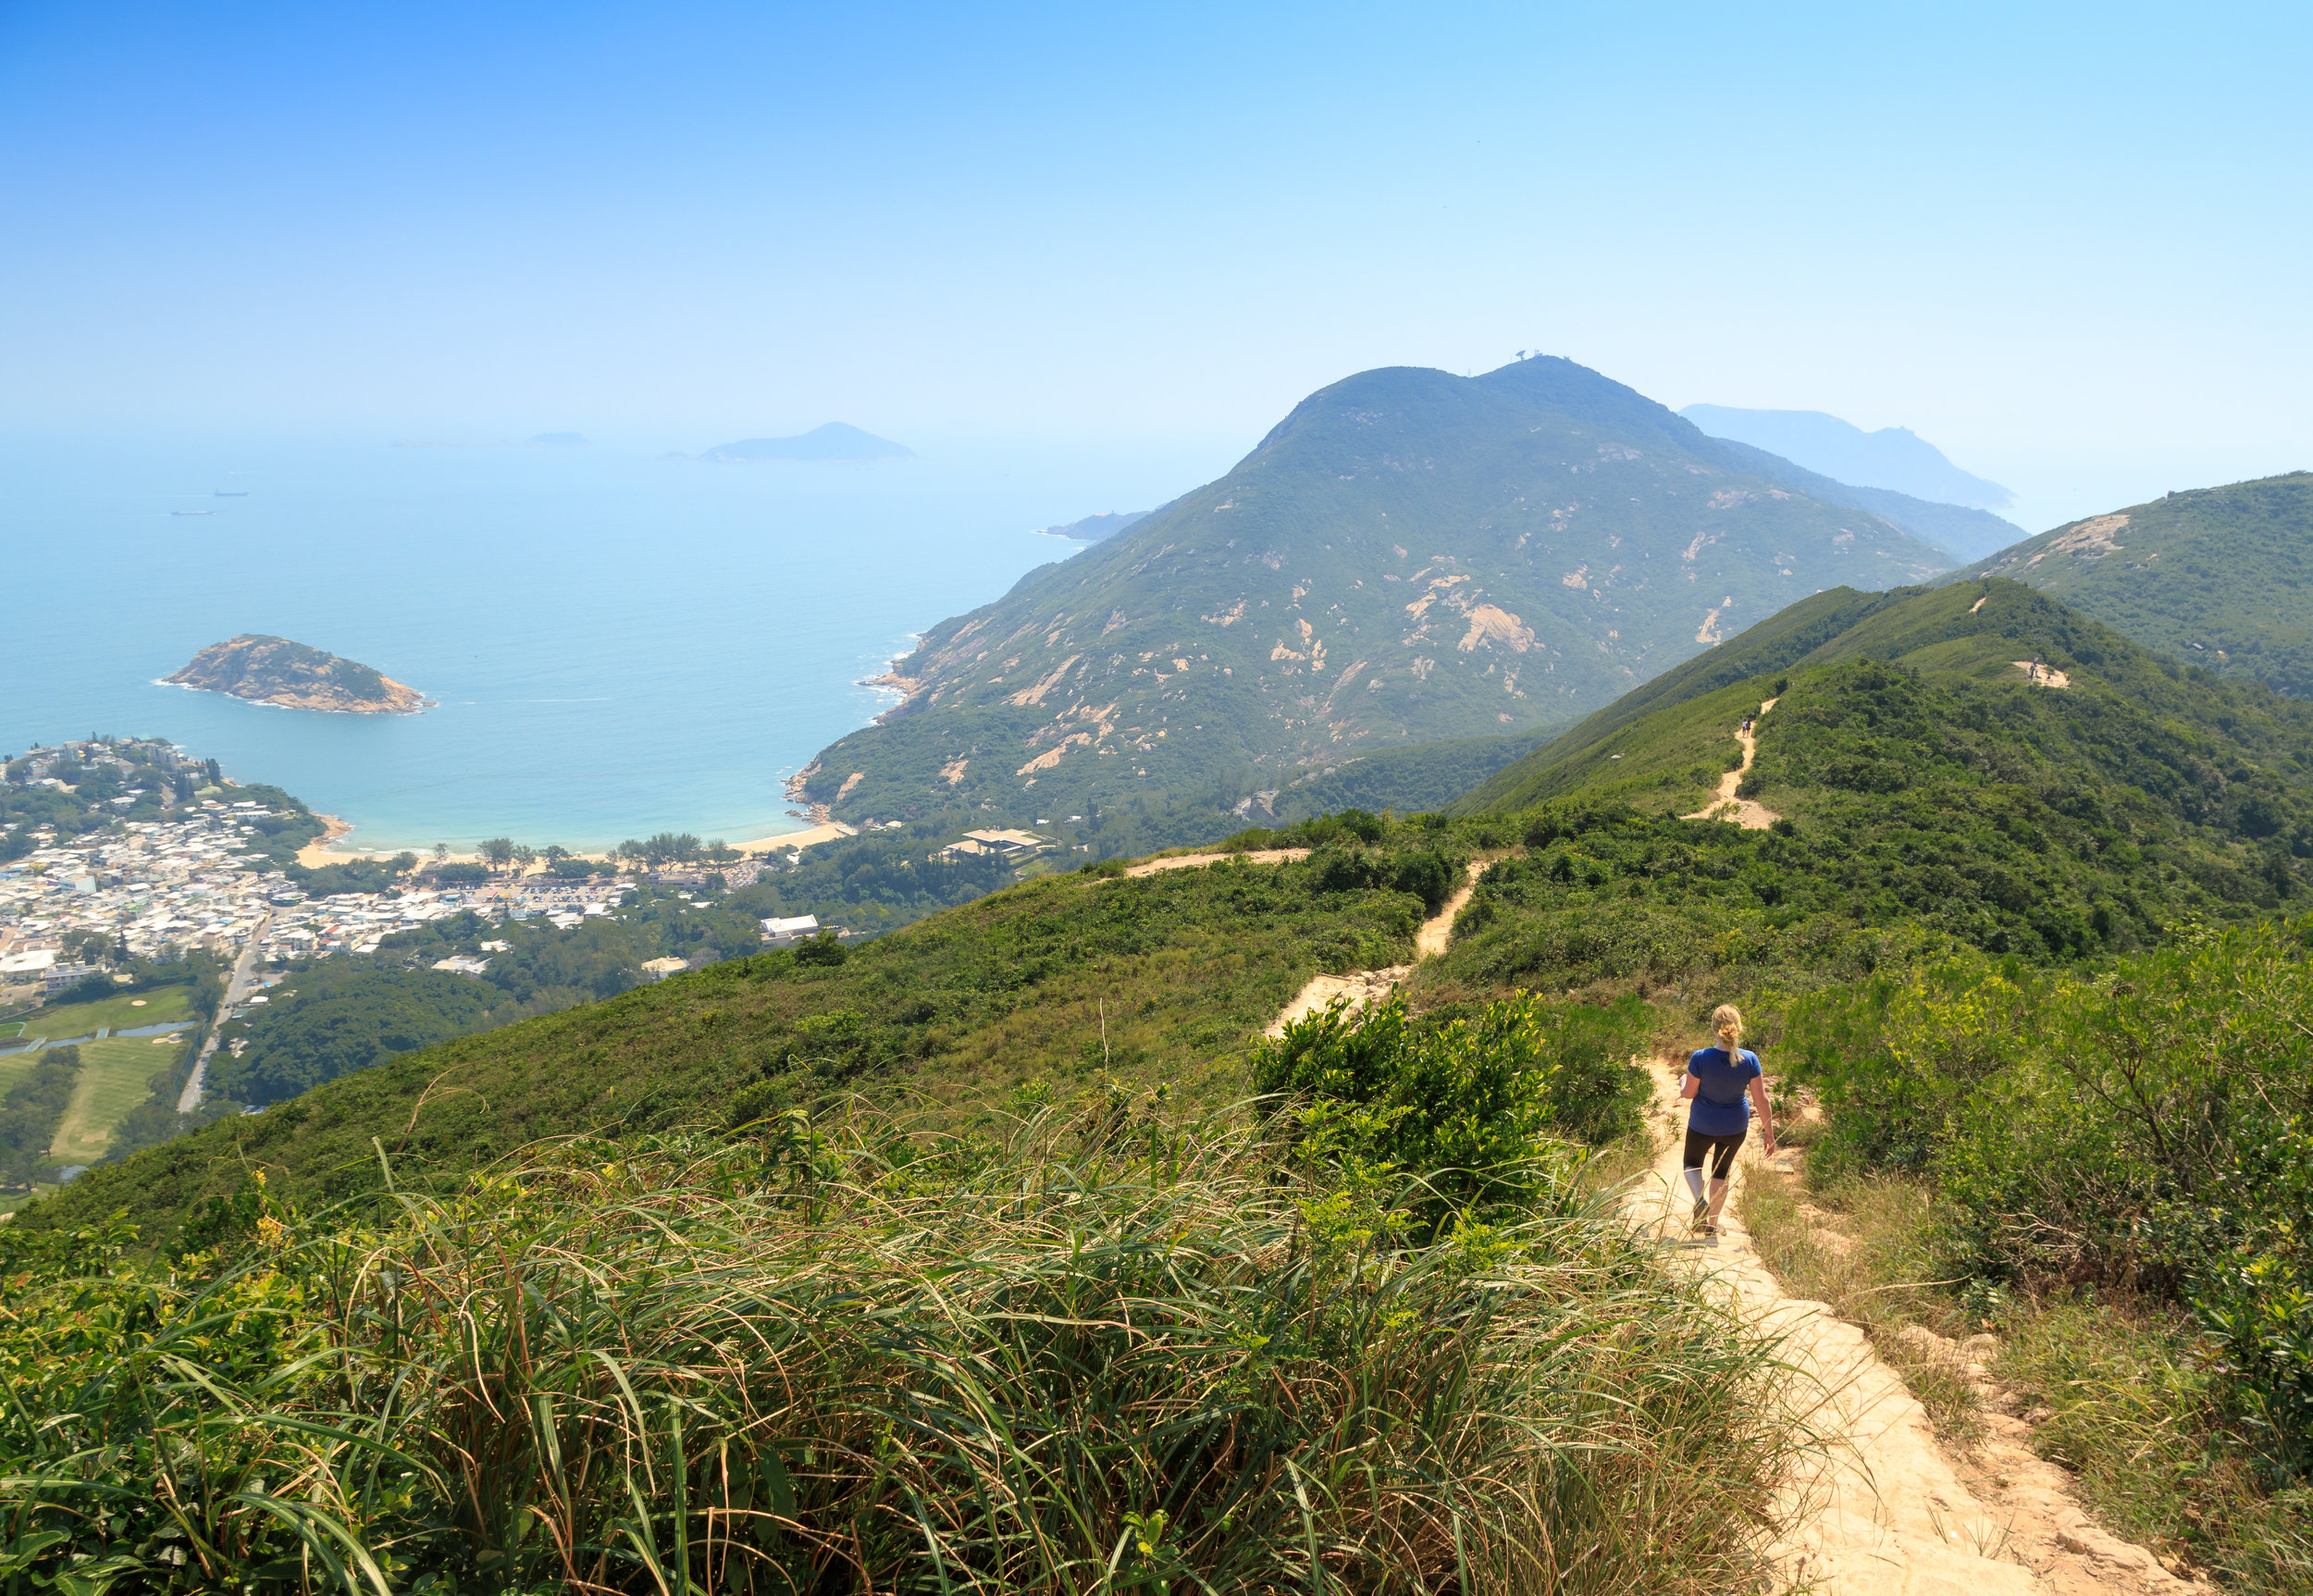 Instagrammable spots in Hong Kong: Dragon's Back Trail